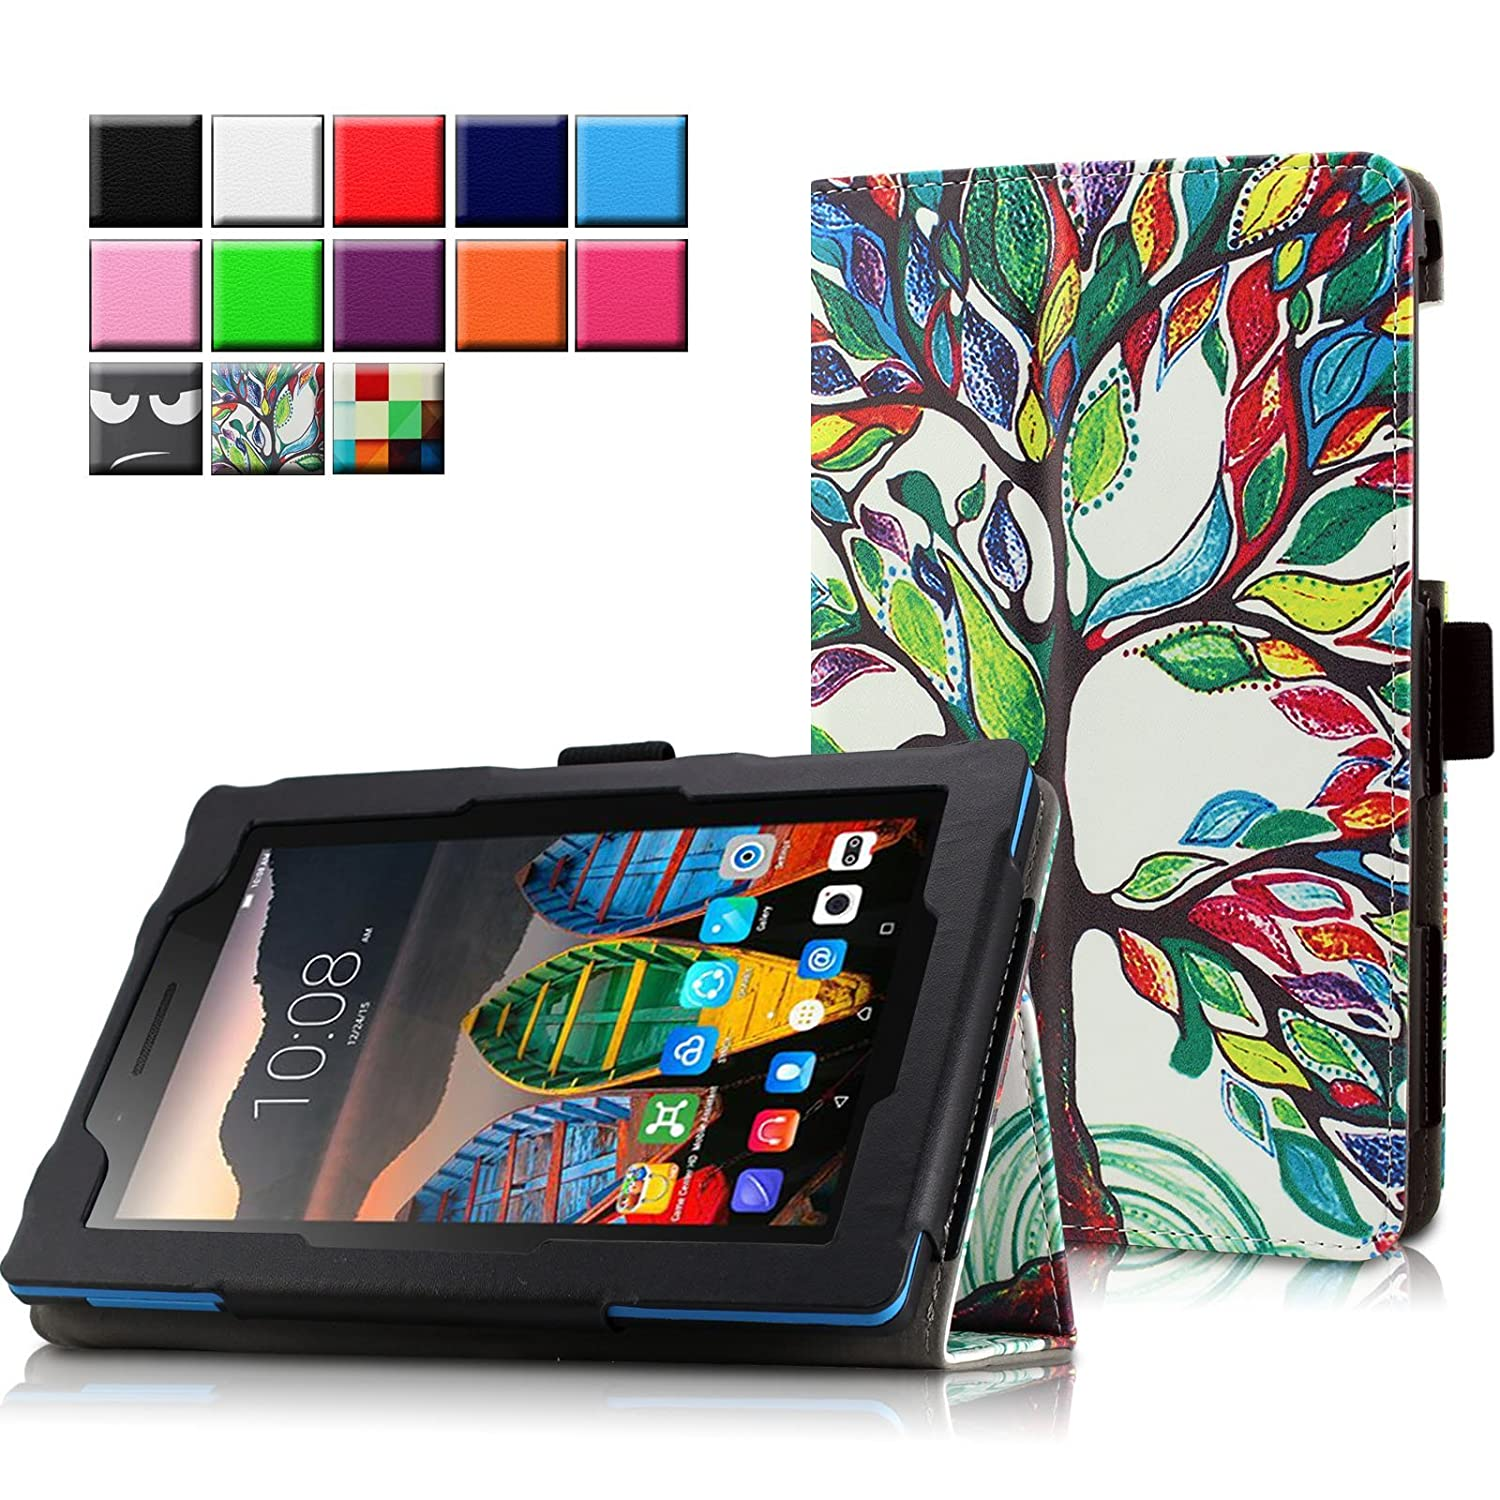 the best attitude 77db5 21c3d Lenovo TAB3 7 Essential / Lenovo Tab3 A7-10 Case Cover, Infiland Folio PU  Leather Slim Stand Case Cover for Lenovo TAB 3 7 Essential (Lenovo  TB3-710F) ...